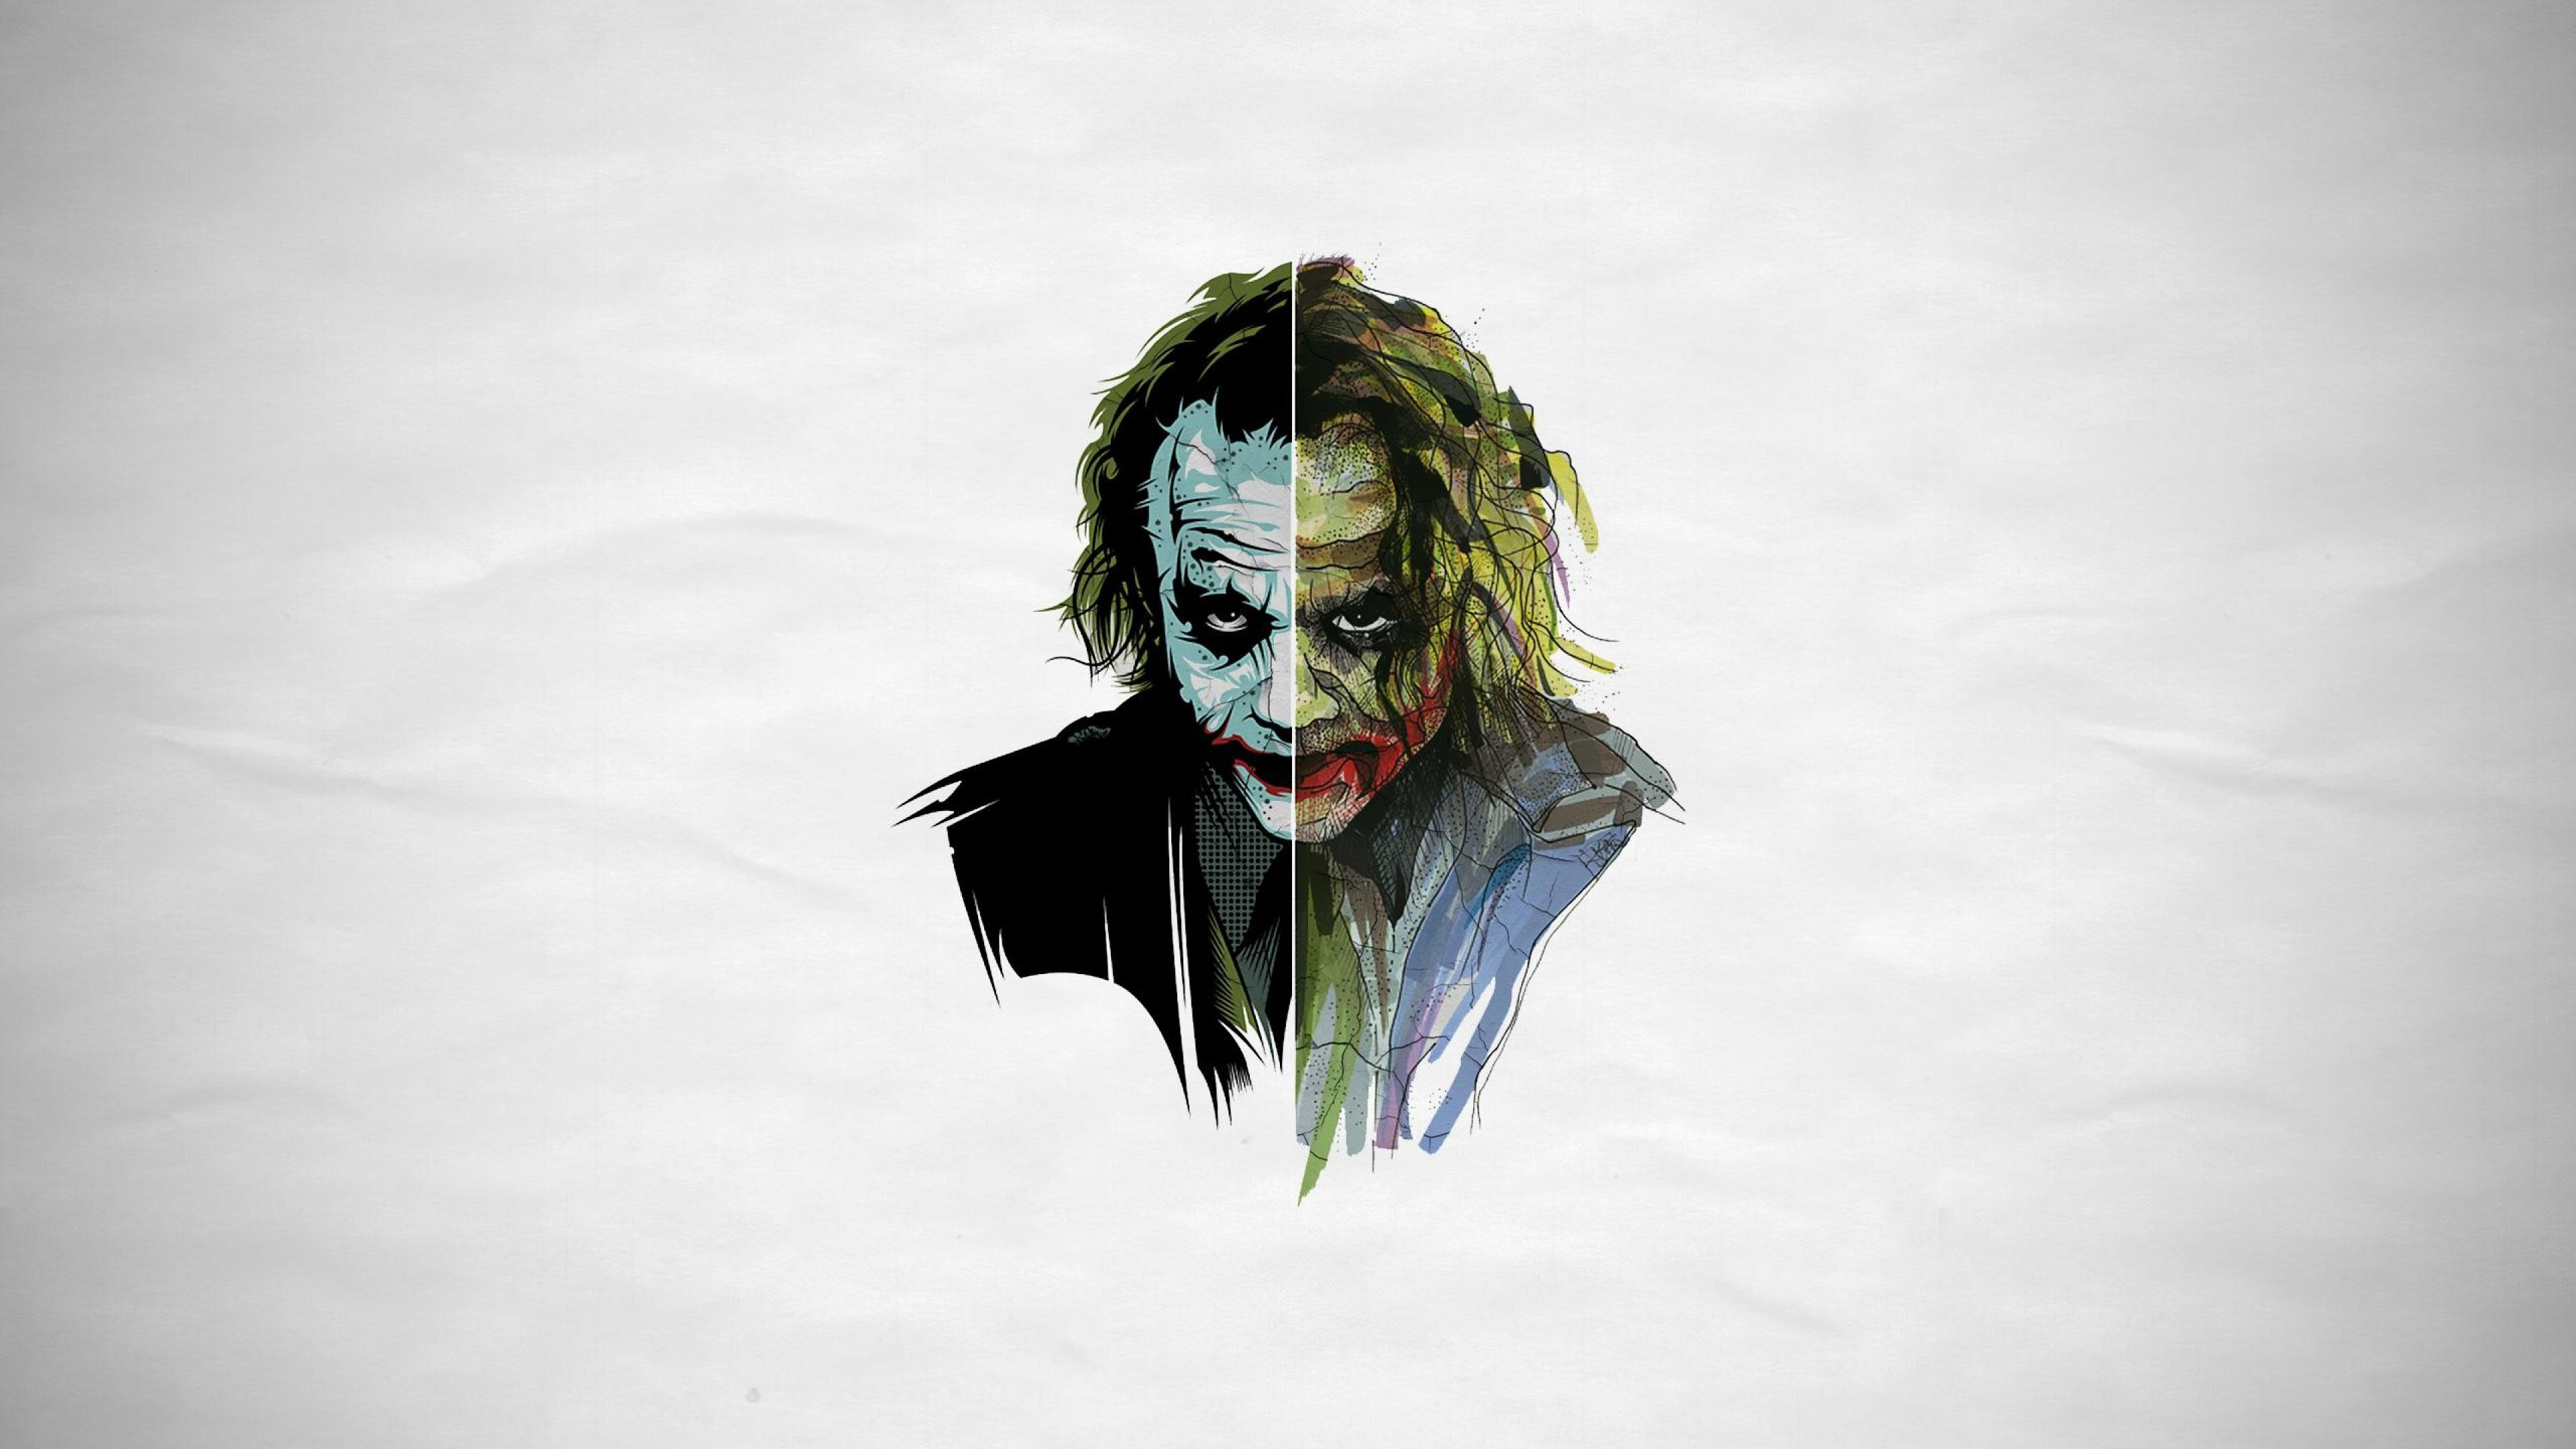 4k Ultra Hd Joker Wallpapers Hd Desktop Backgrounds